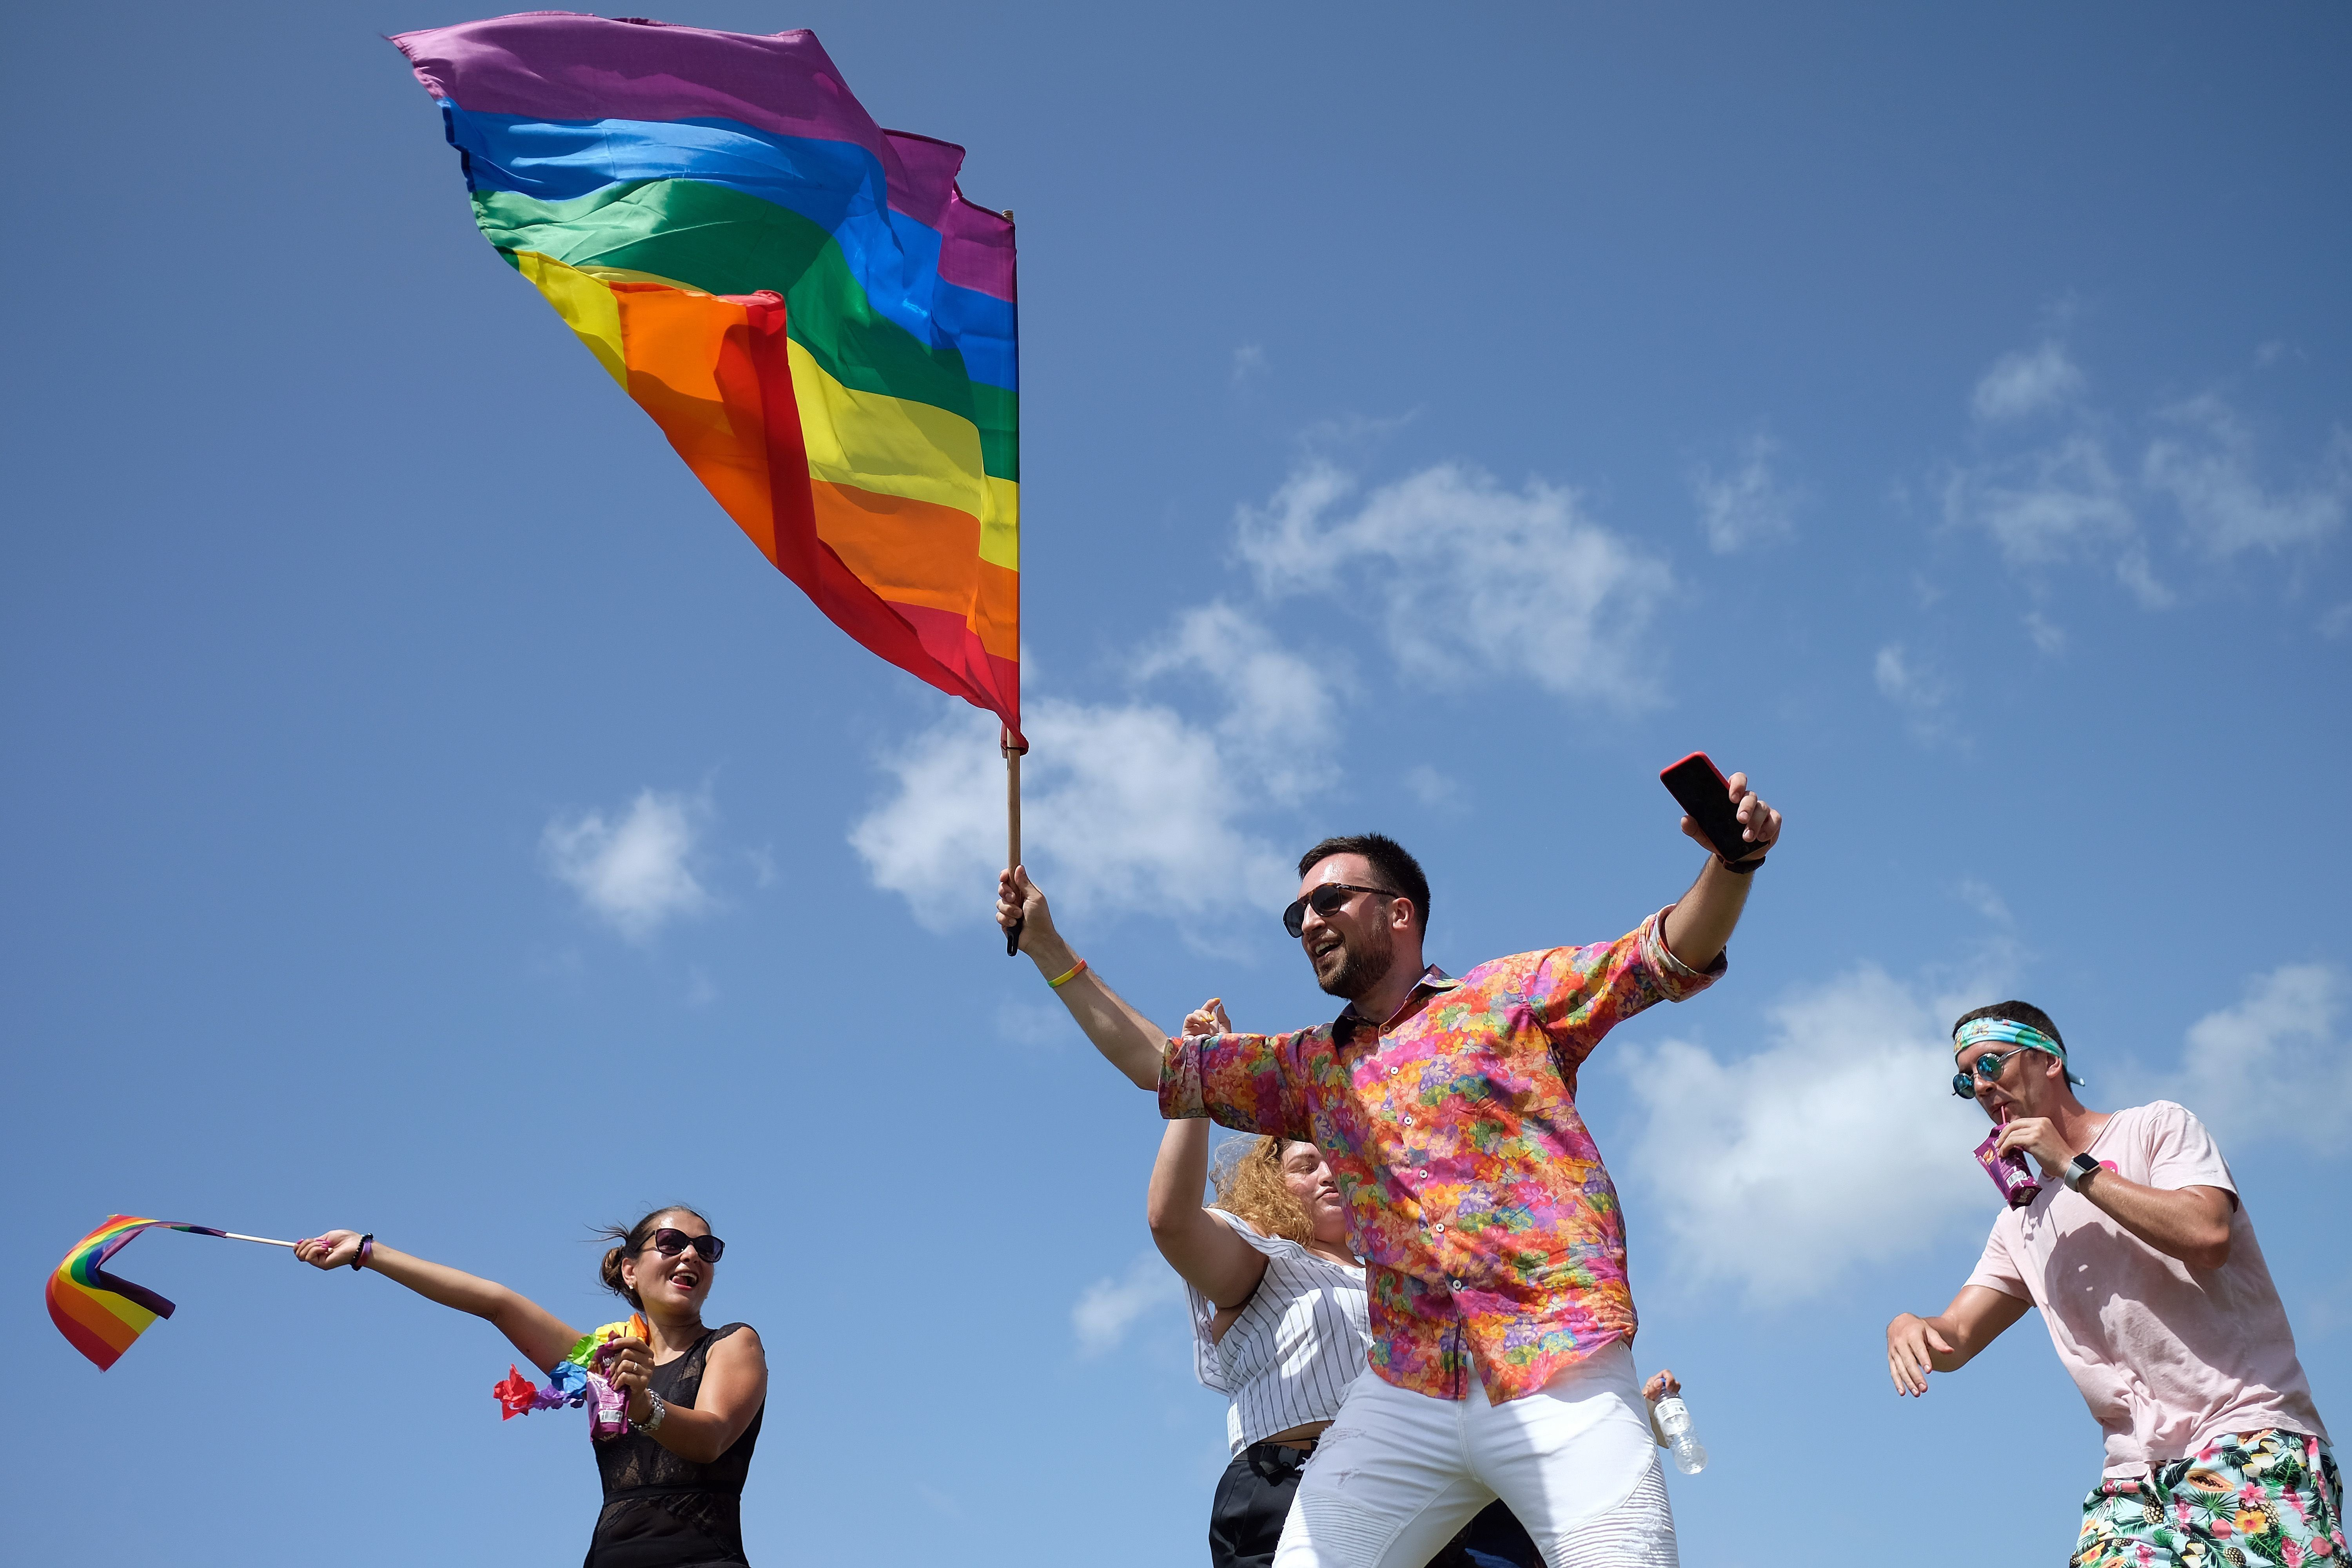 Puerto Rico joins 15 states and a number of cities in banning conversion therapy practices on minors.